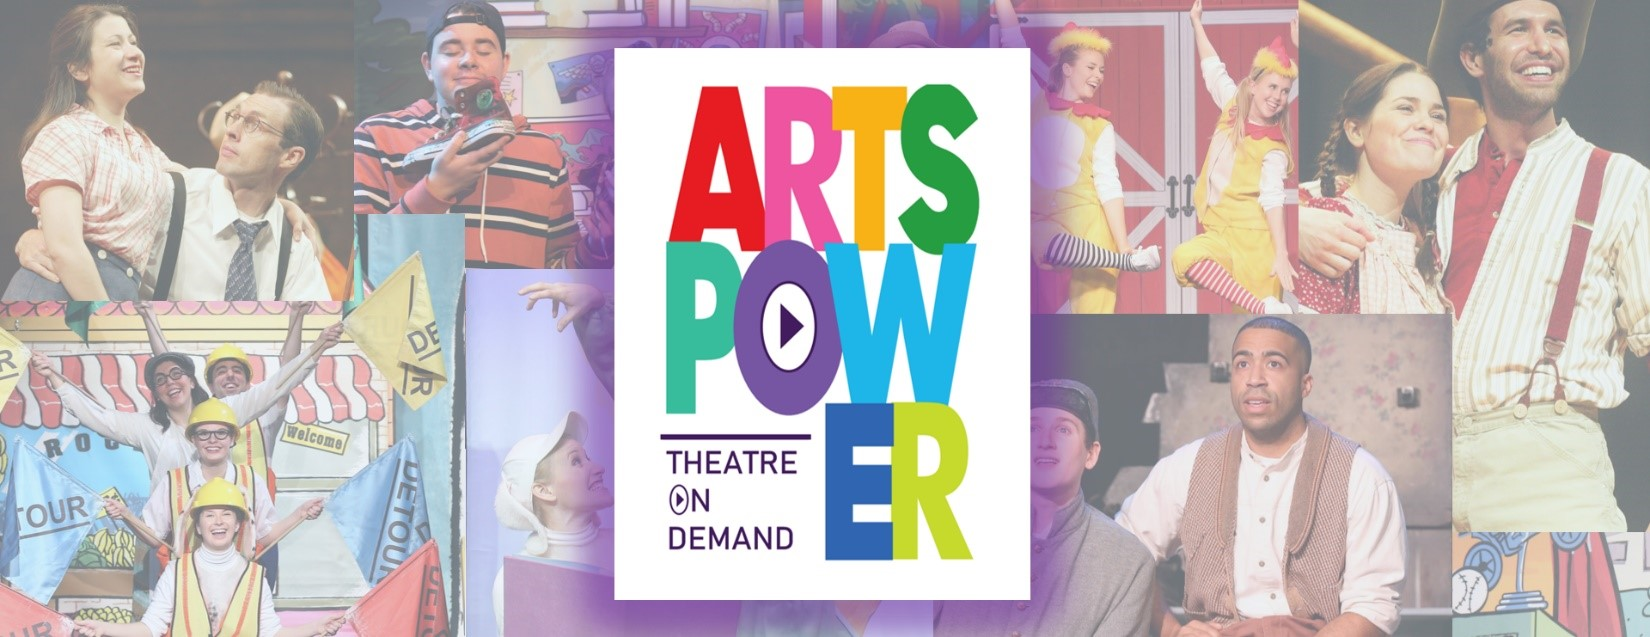 ArtsPower Theatre On Demand!